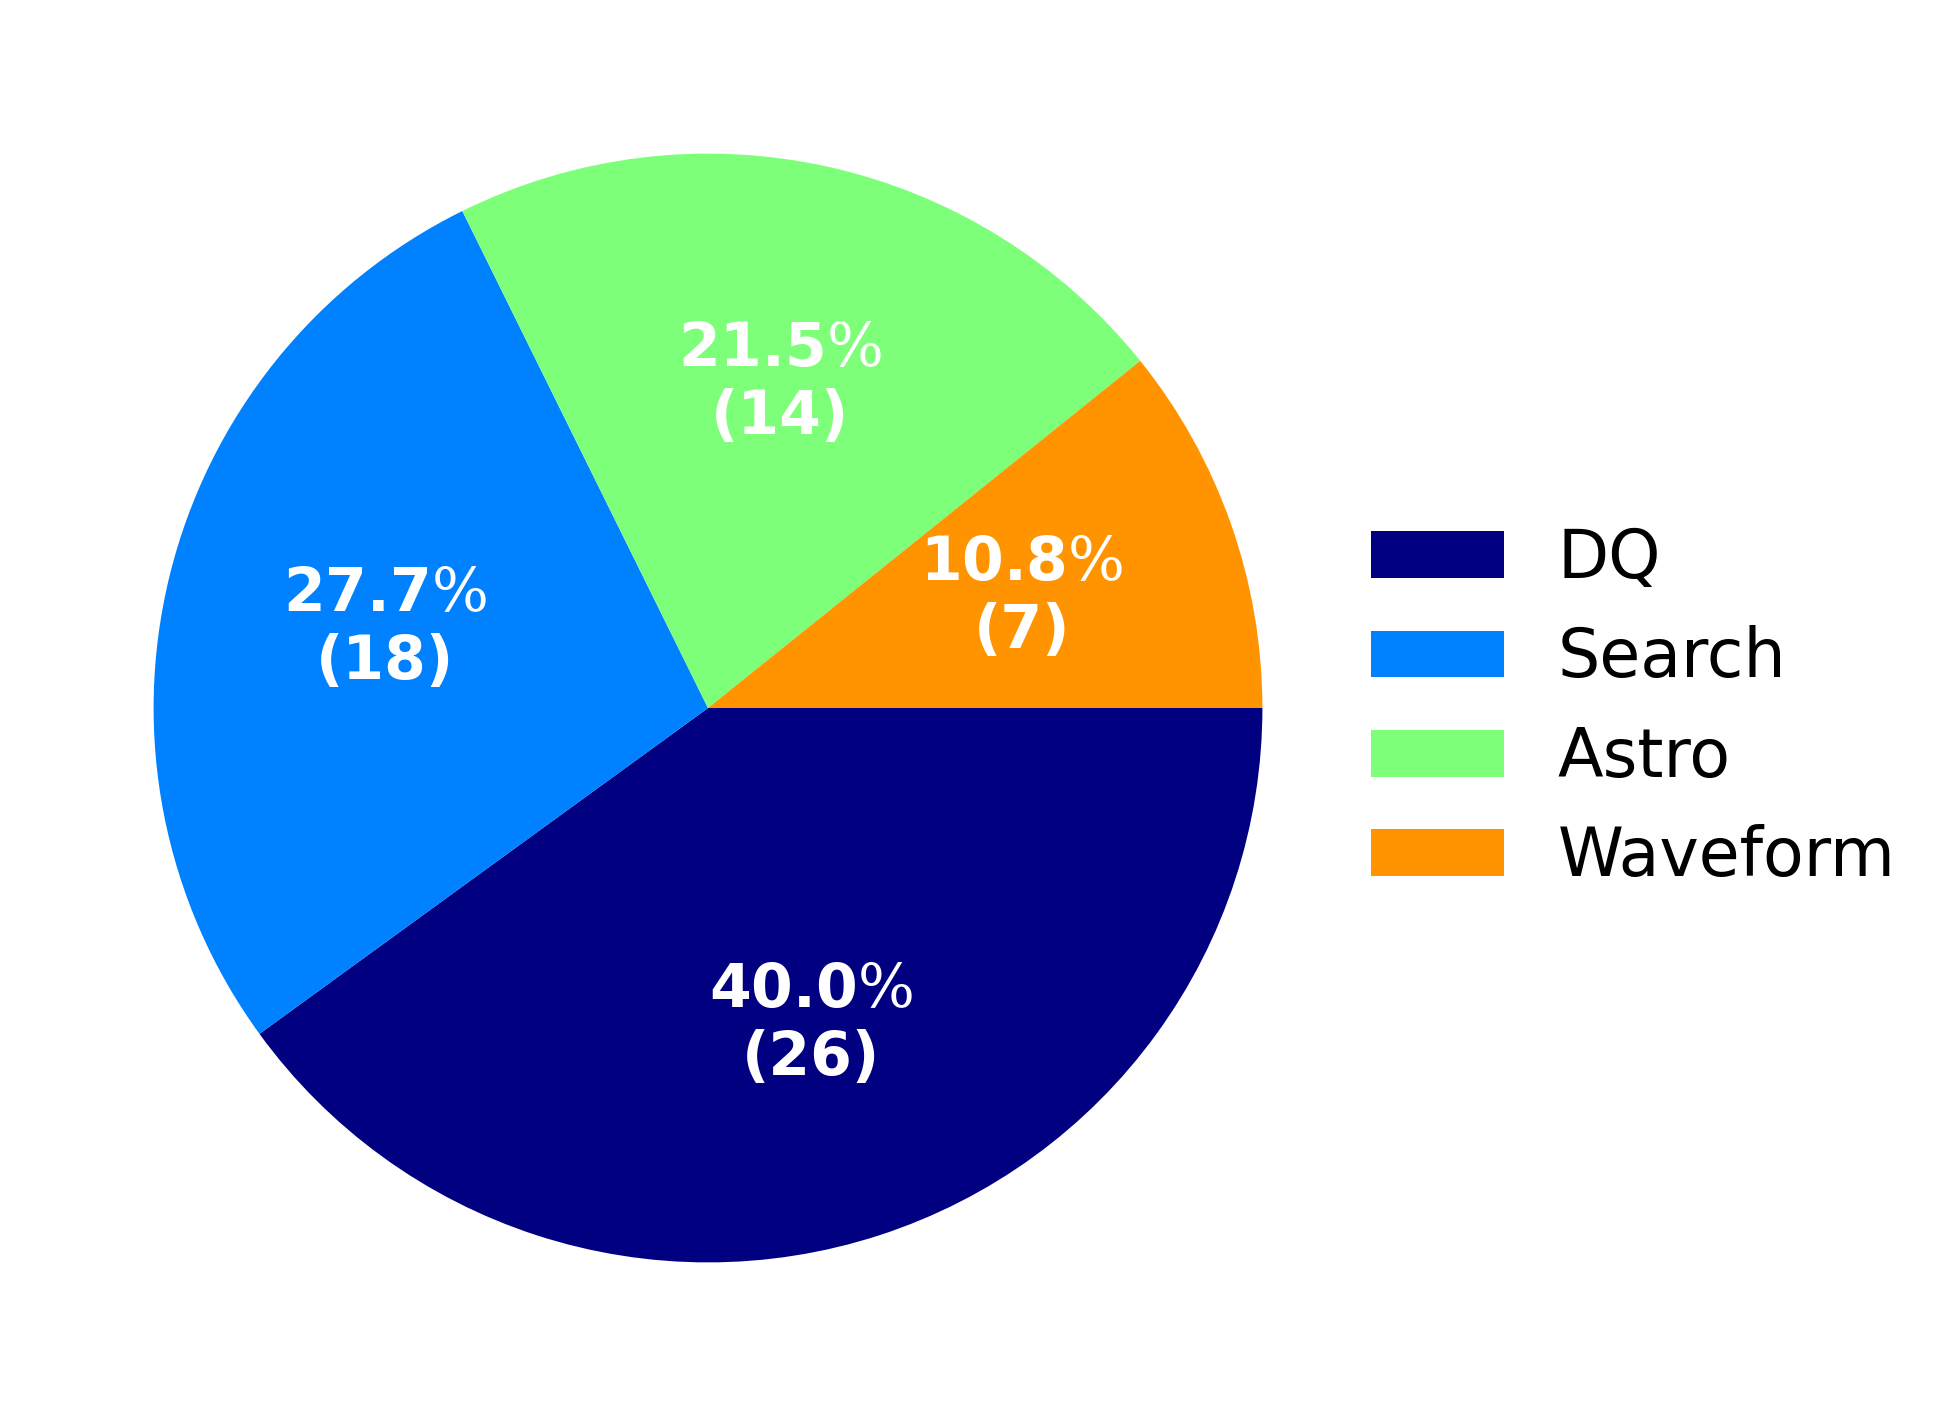 Fig. 3. Number of published papers of each of the four major disciplines of the GW science.